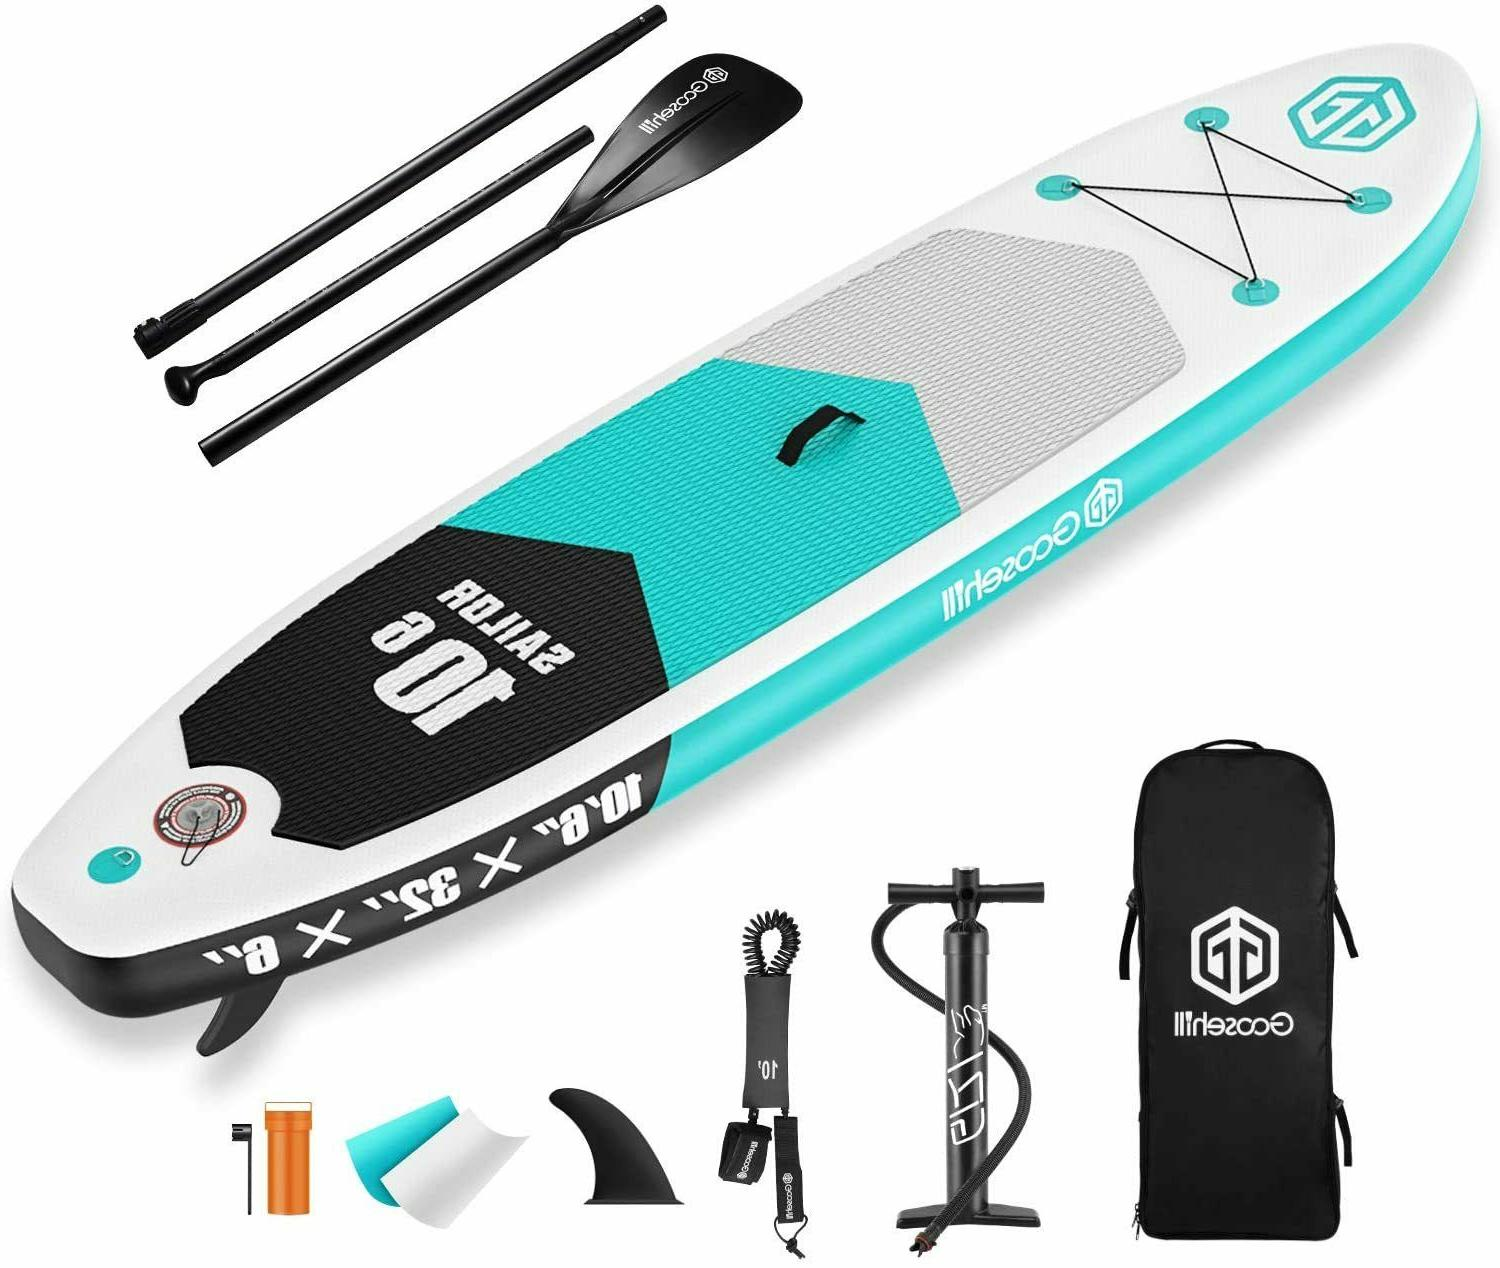 TOP Goosehill Teal Sailor Inflatable StandUp PaddleBoard Lig